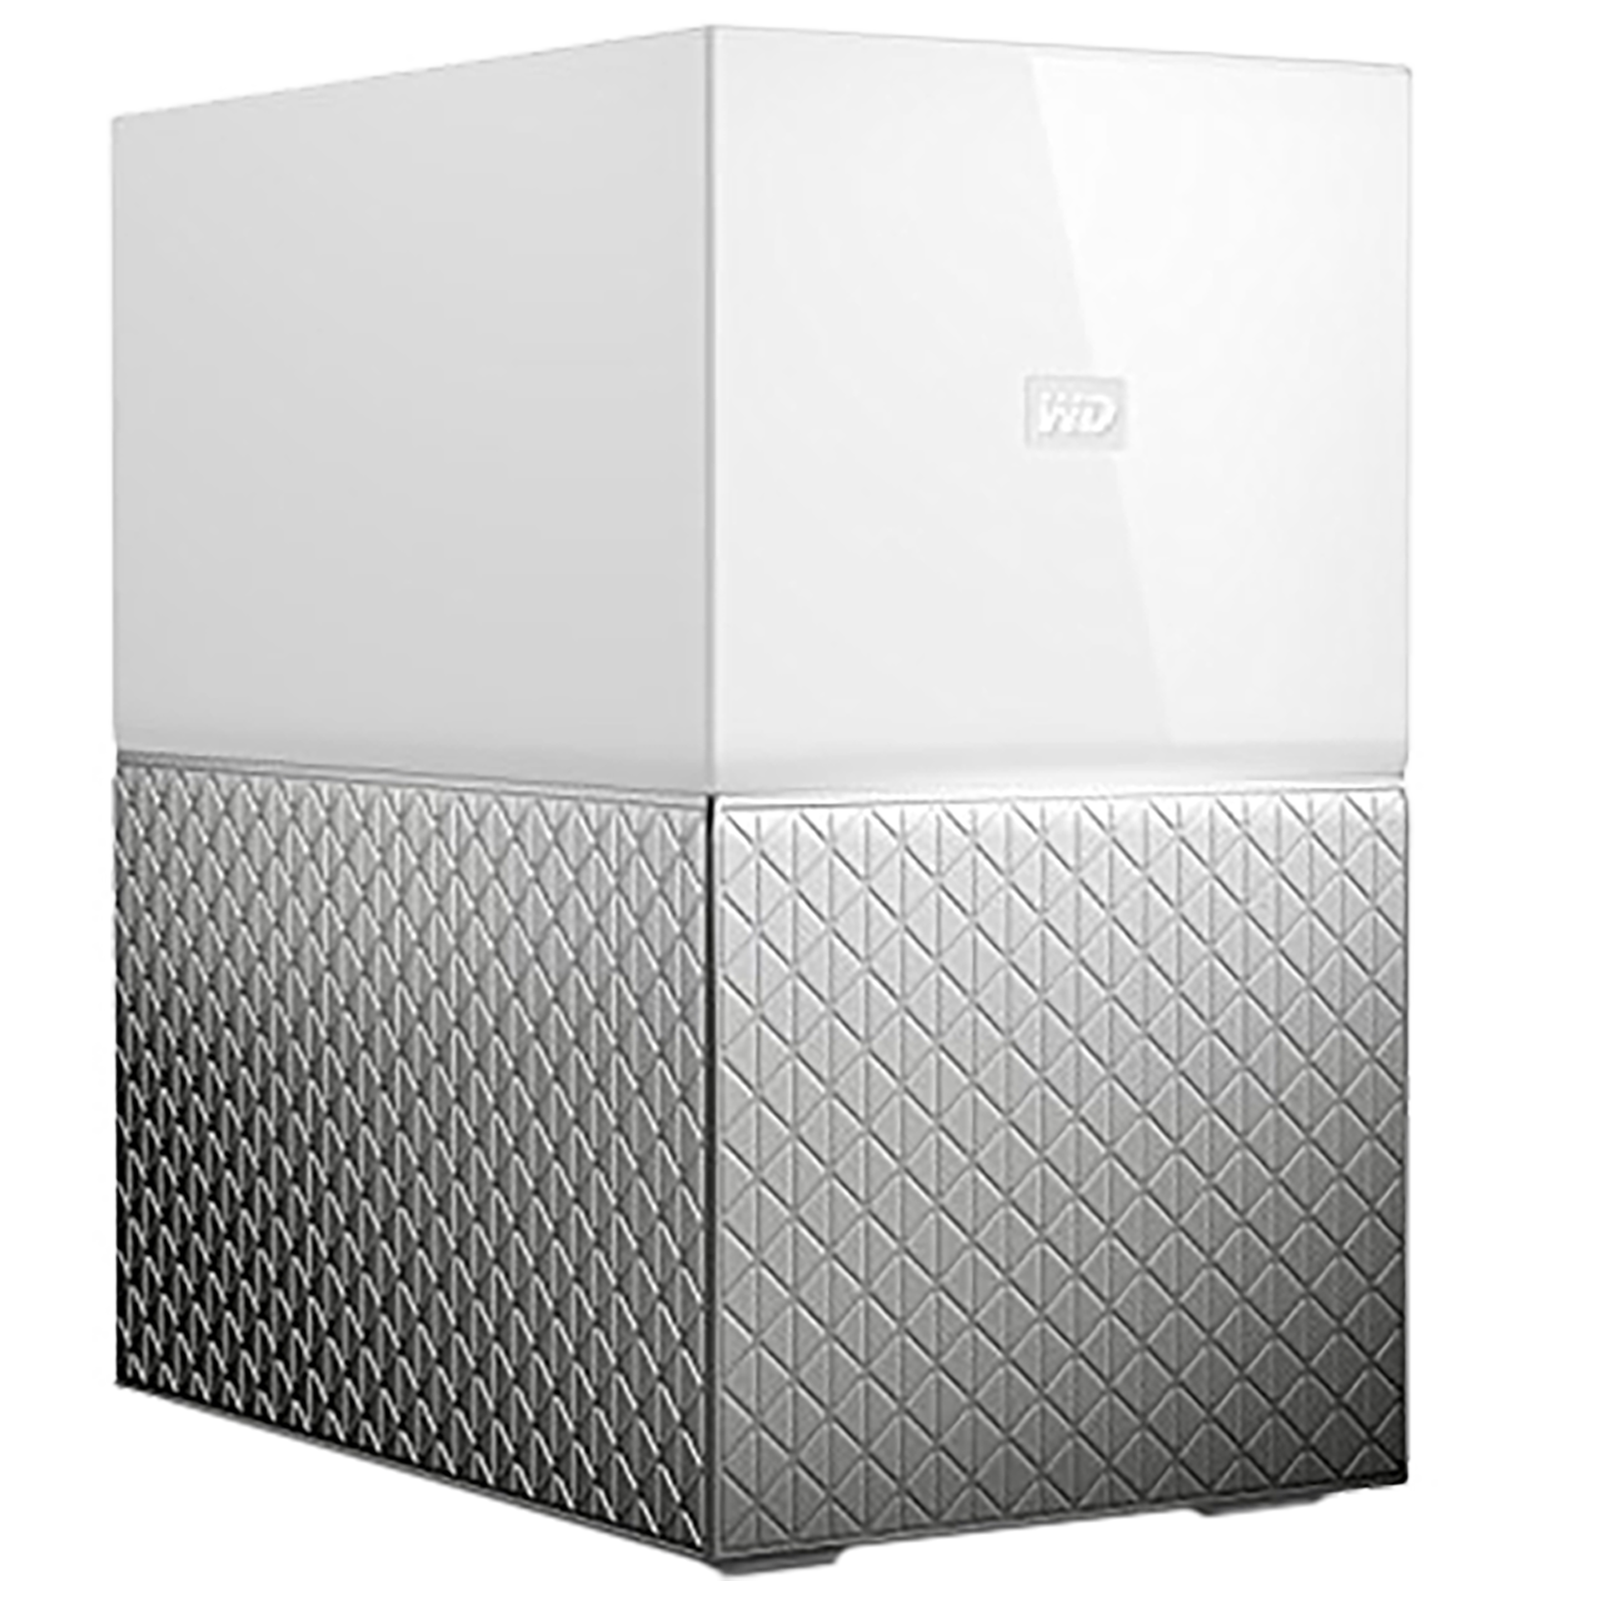 Western Digital My Cloud Home Duo 8 TB USB 3.0 Network Attached Storage (Automatic Backup, WDBMUT0080JWT-BESN, White)_1